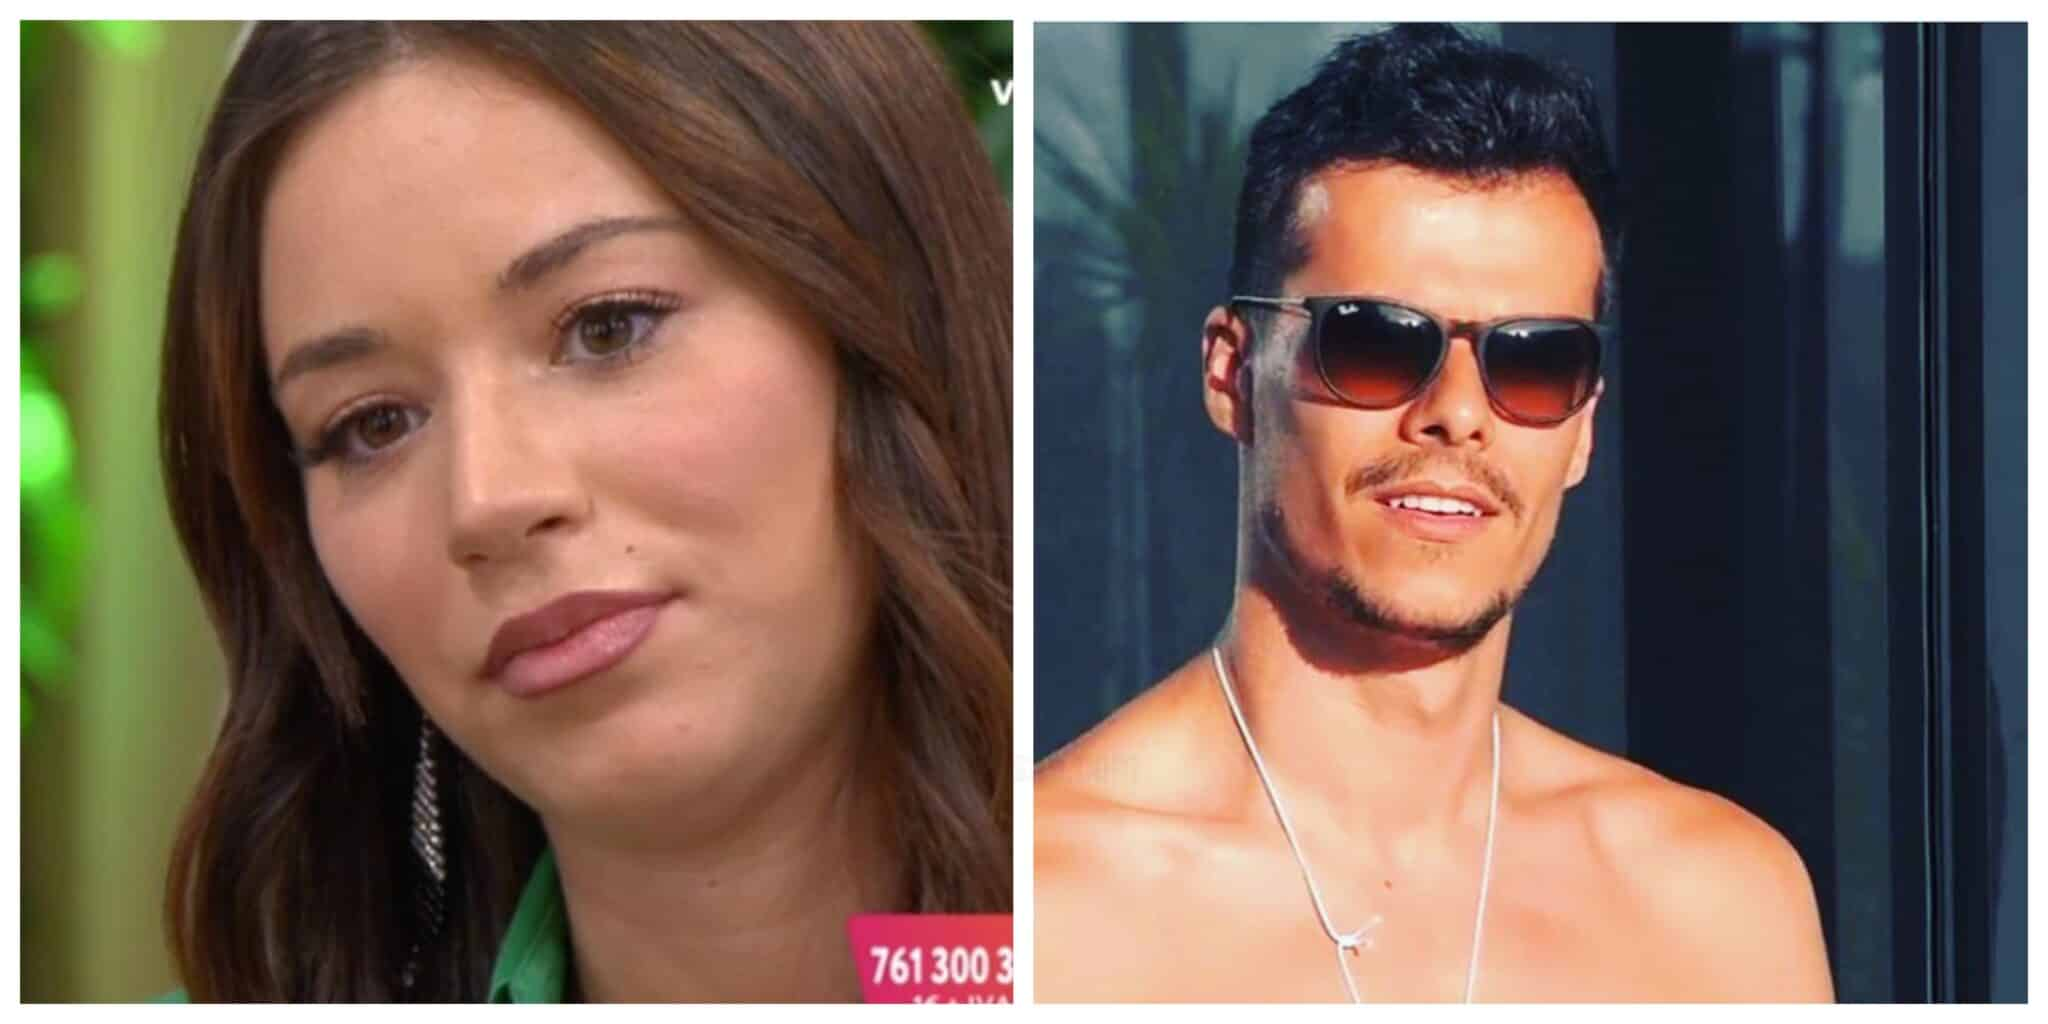 big-brother-jessica-pedro-alves-2-1